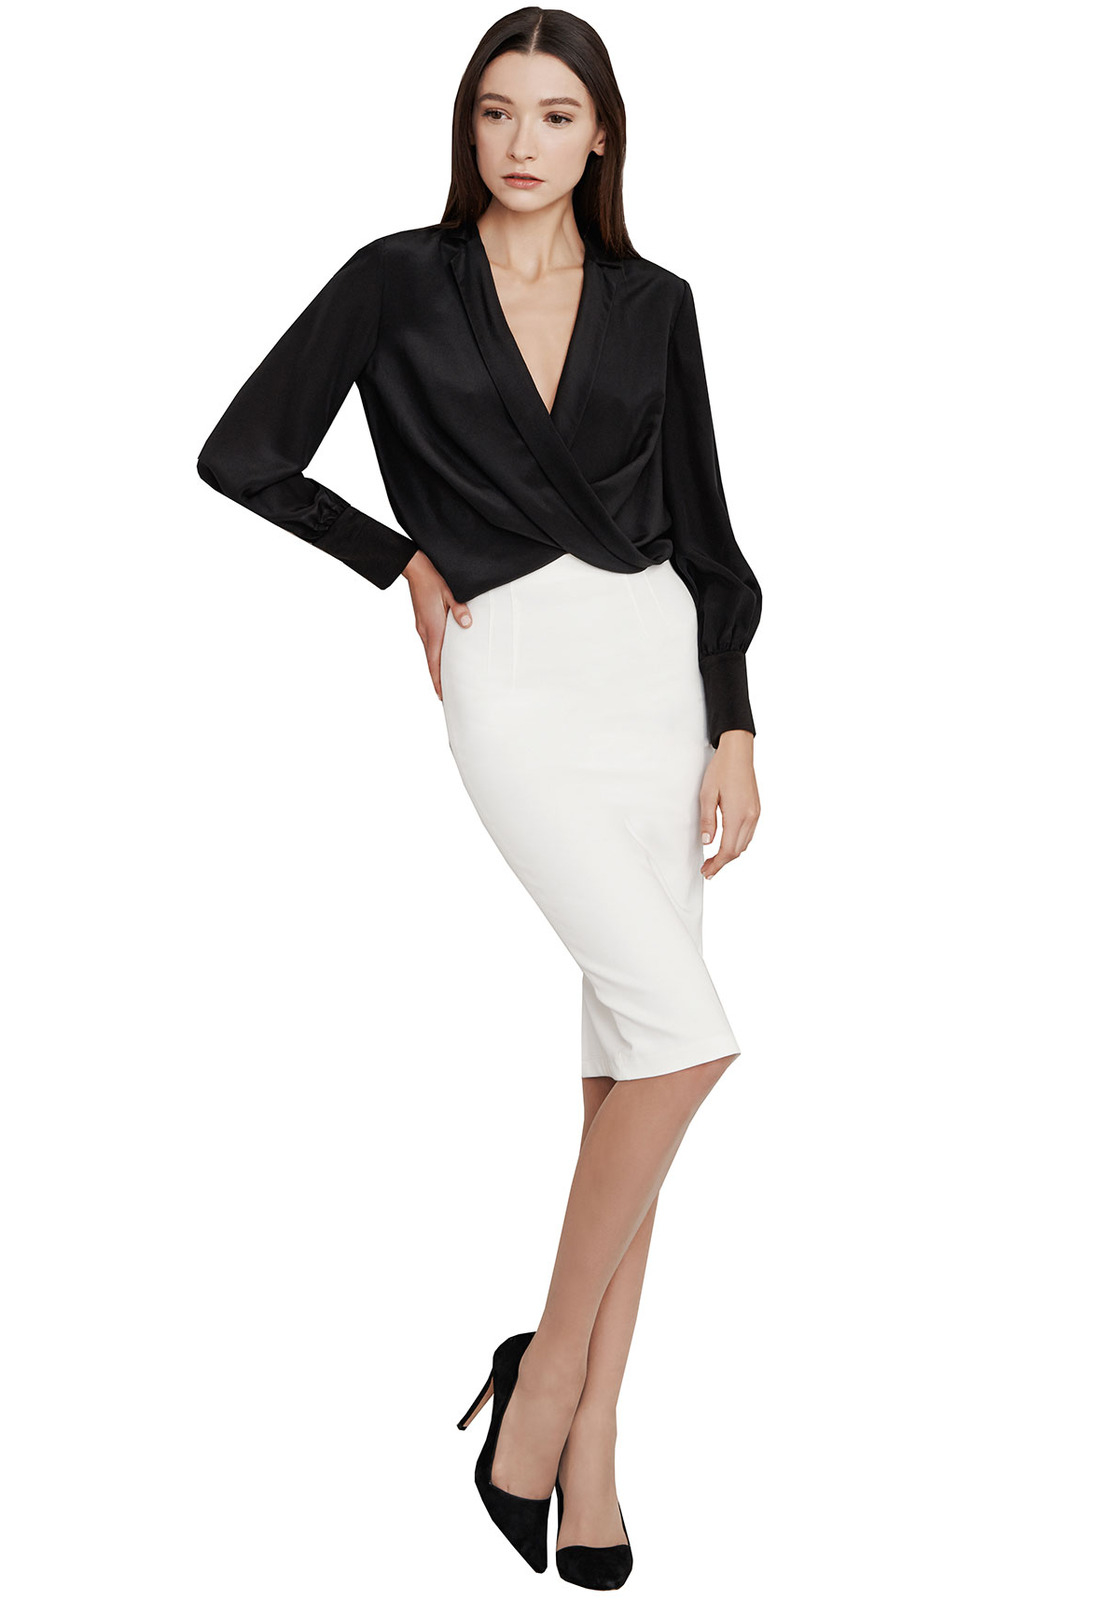 Alice + olivia Super High Waist Pencil Skirt in Natural | Lyst